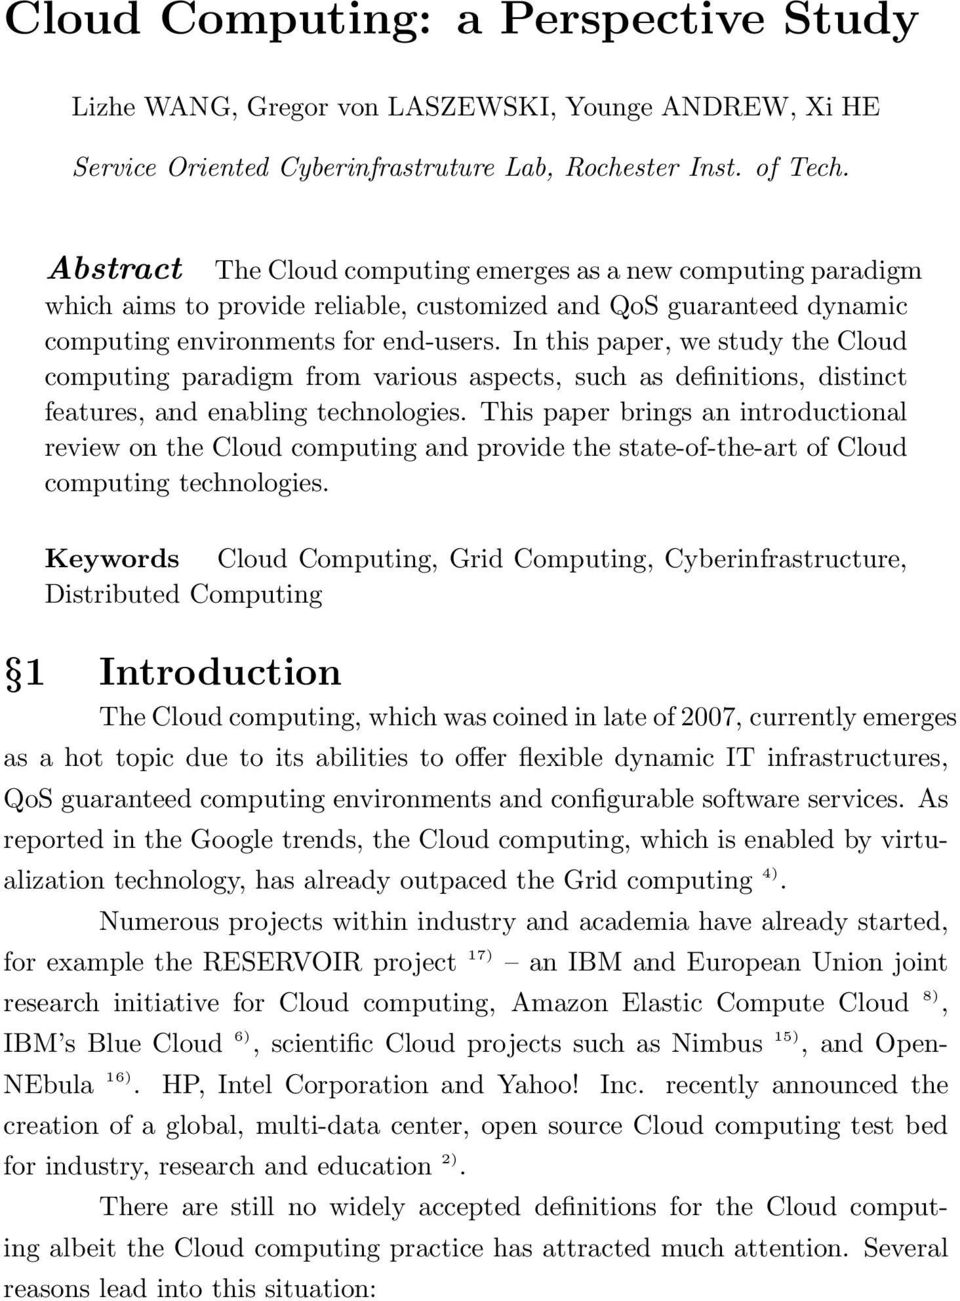 In this paper, we study the Cloud computing paradigm from various aspects, such as definitions, distinct features, and enabling technologies.